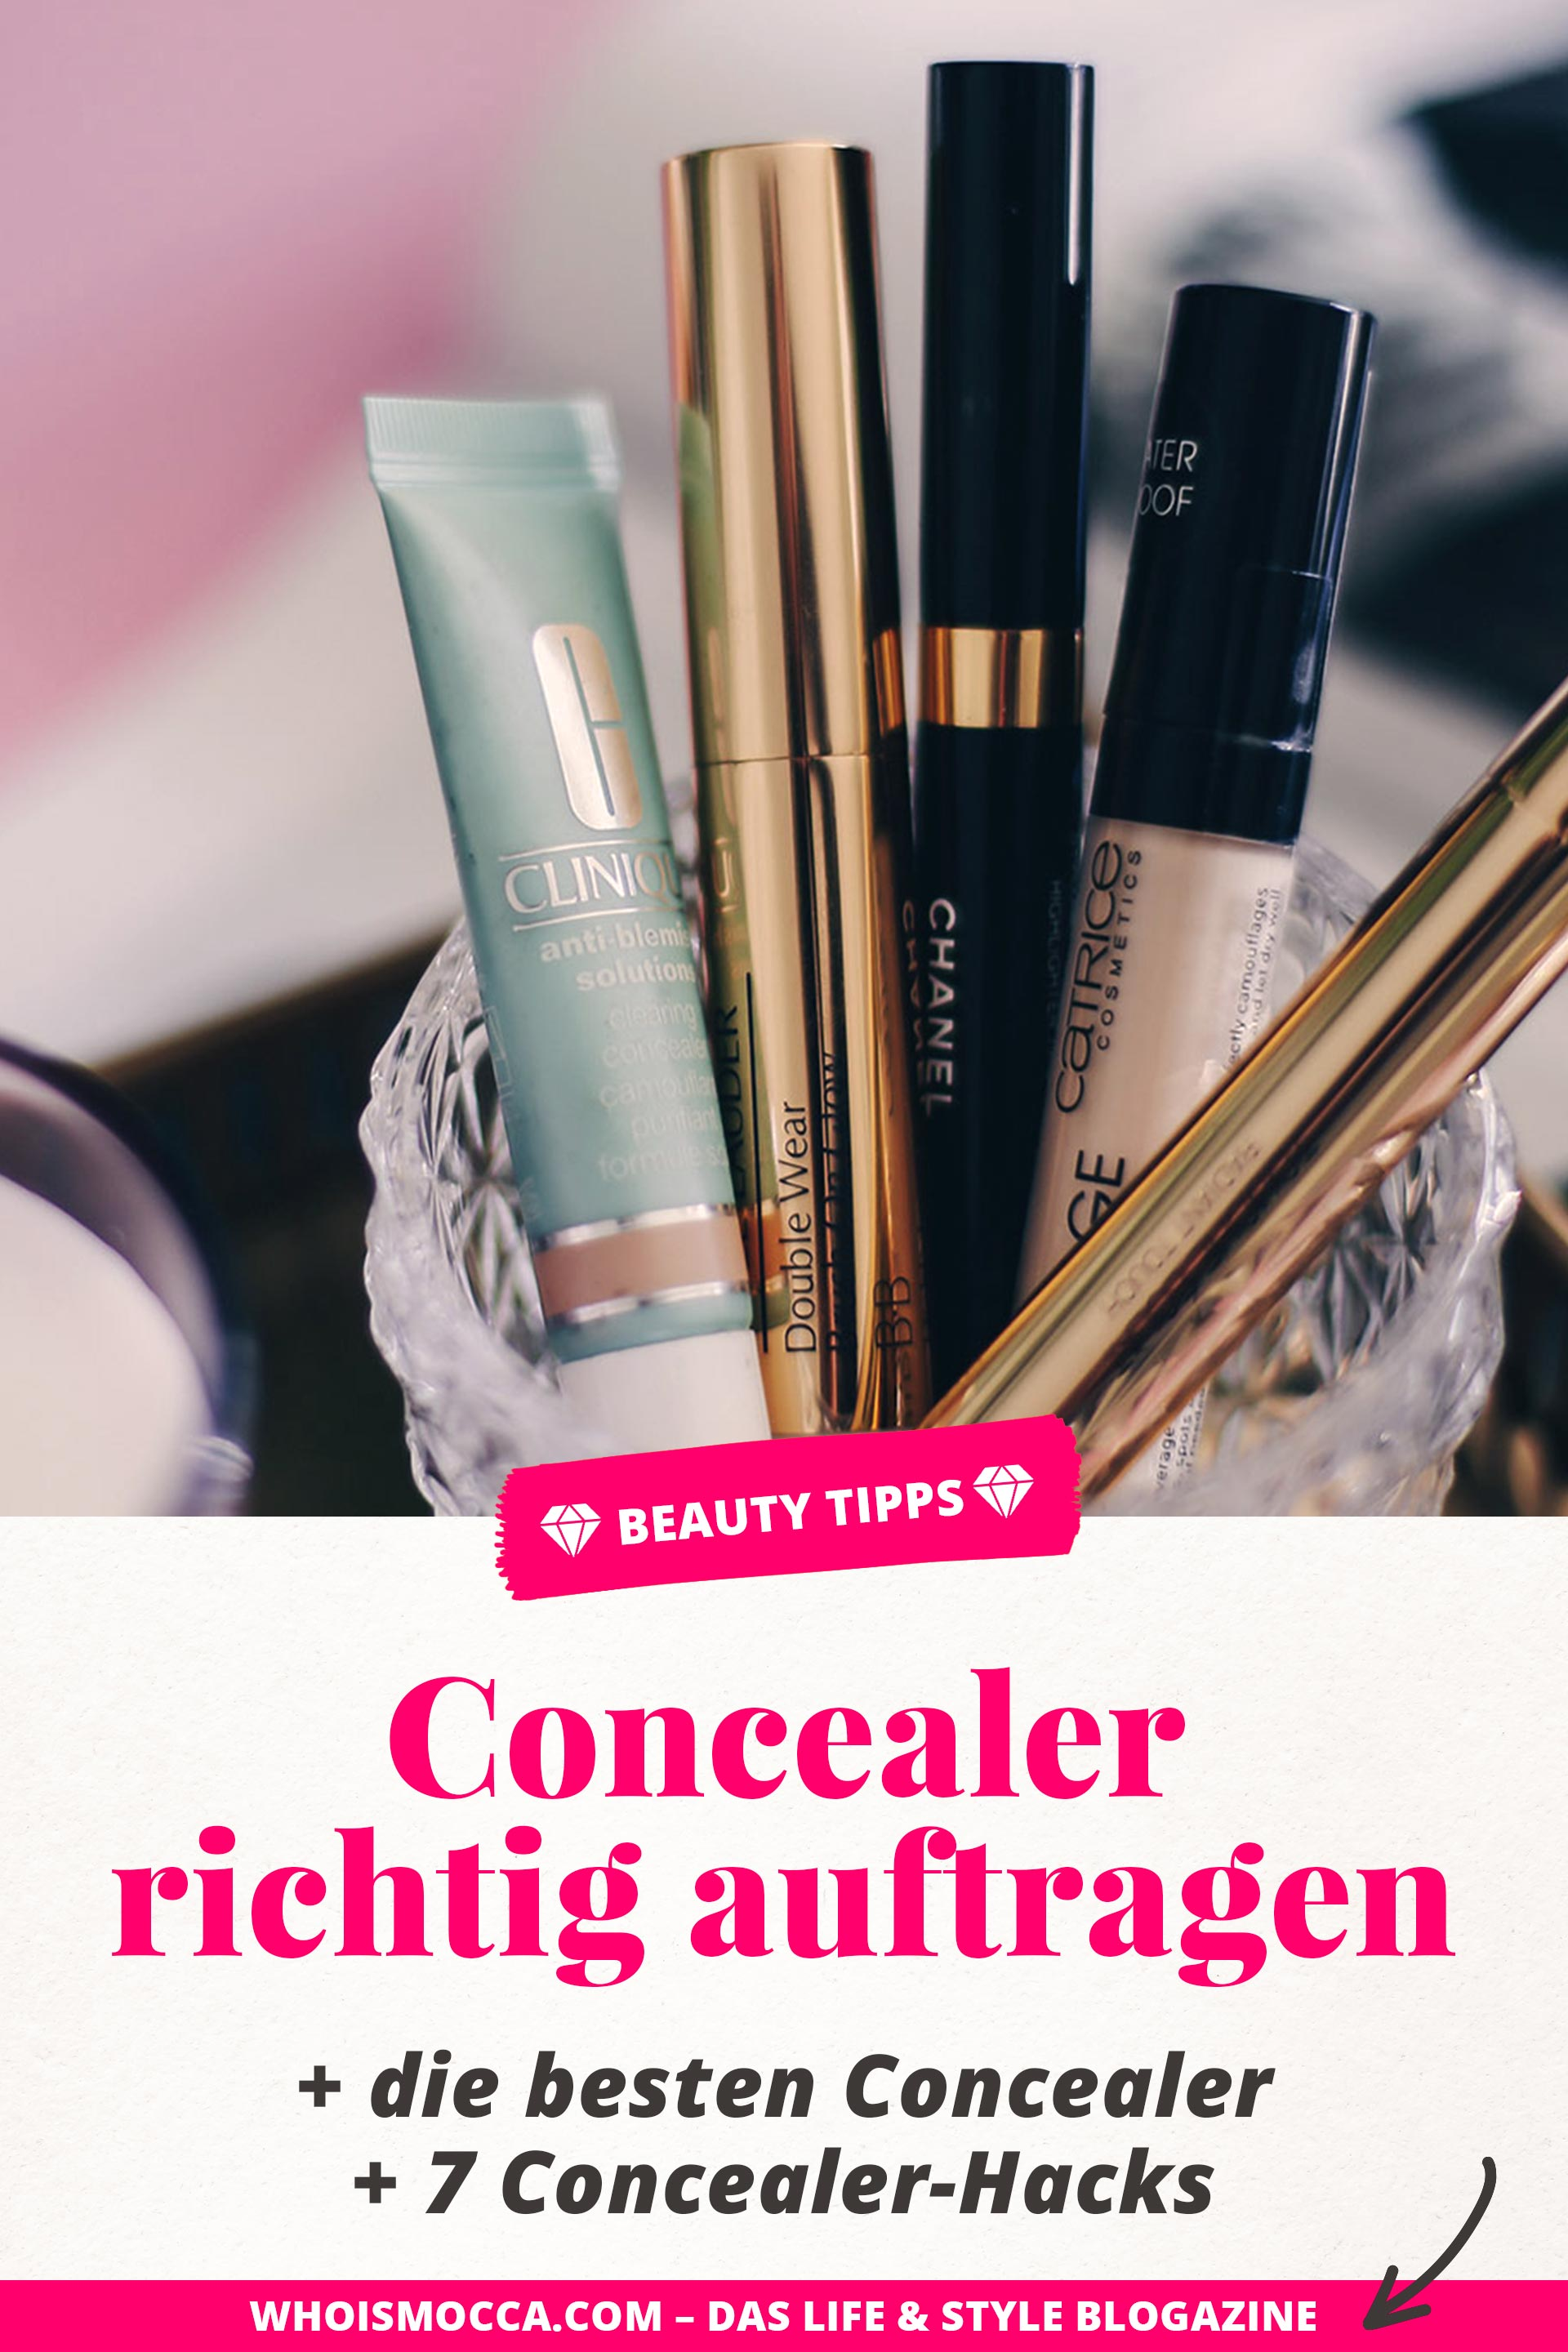 Concealer Vergleich und Review, Concealer richtig auftragen, Concealer Hacks, Concealer Tipps, Welche Concealer Farbe, Beautyreport, Beauty Blog, Beauty Magazin, #concealer #beautytipps #beautyhacks #beautyblogger #foundation #teint #concealertipps #beautytutorial, www.whoismocca.com